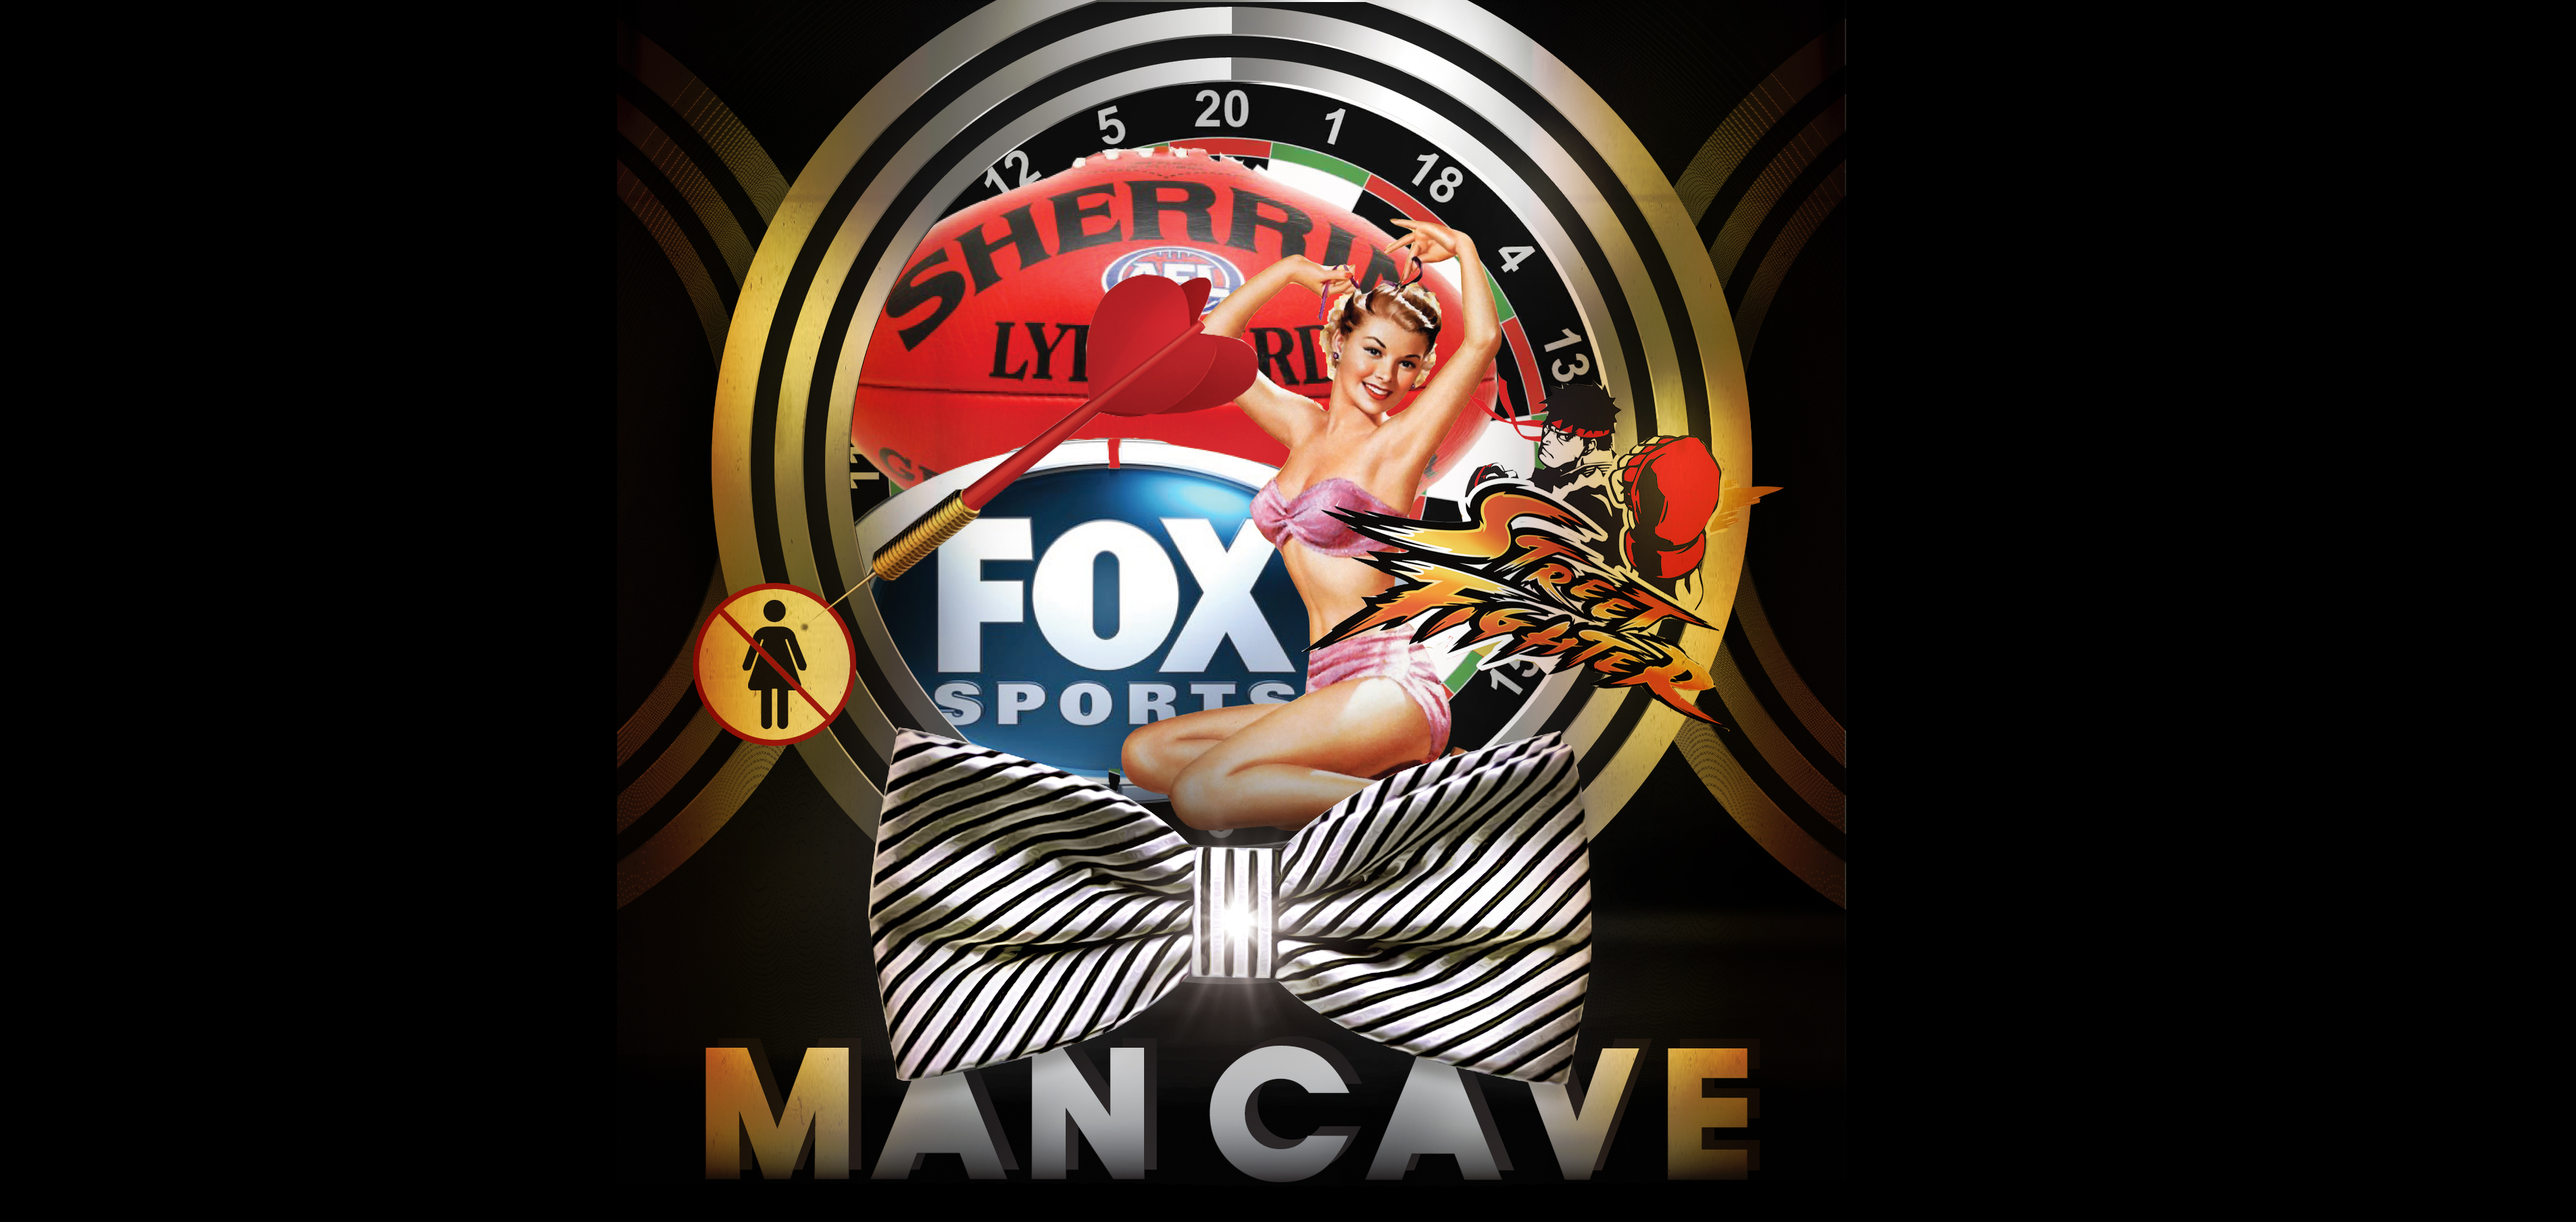 man cave_banner